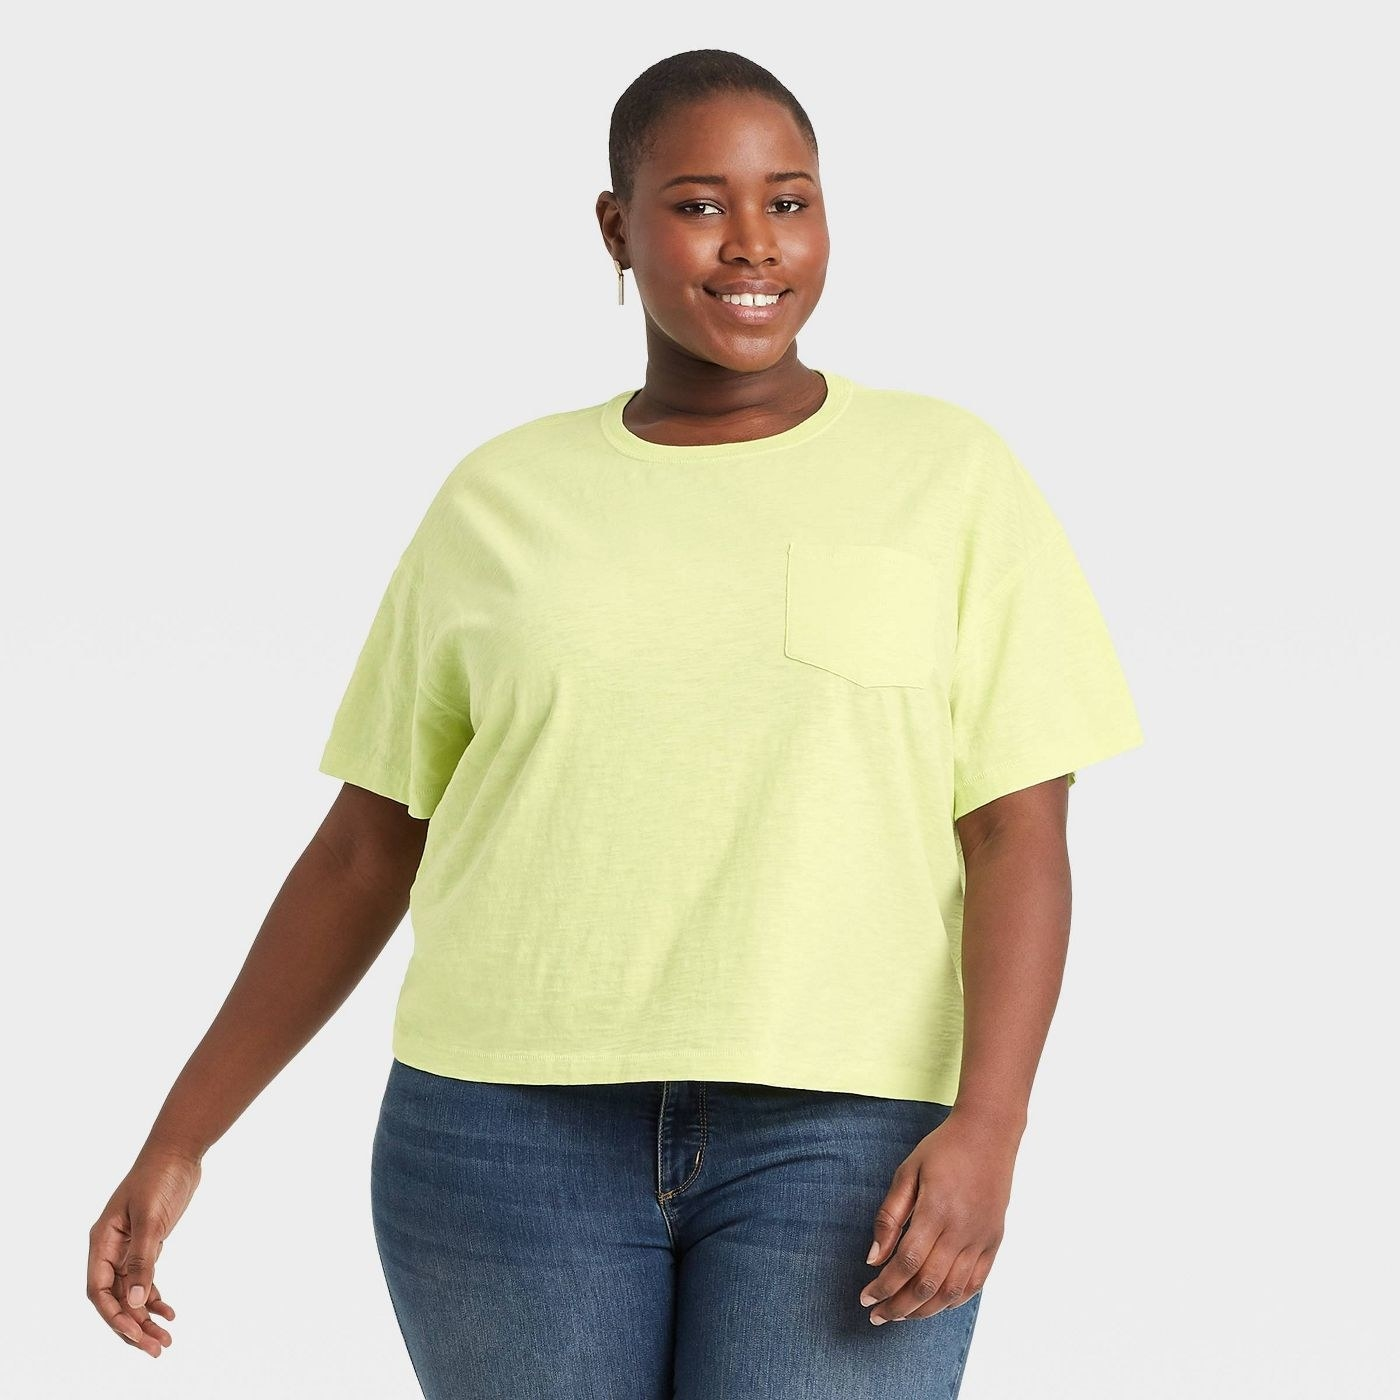 Model wearing the top in bright green